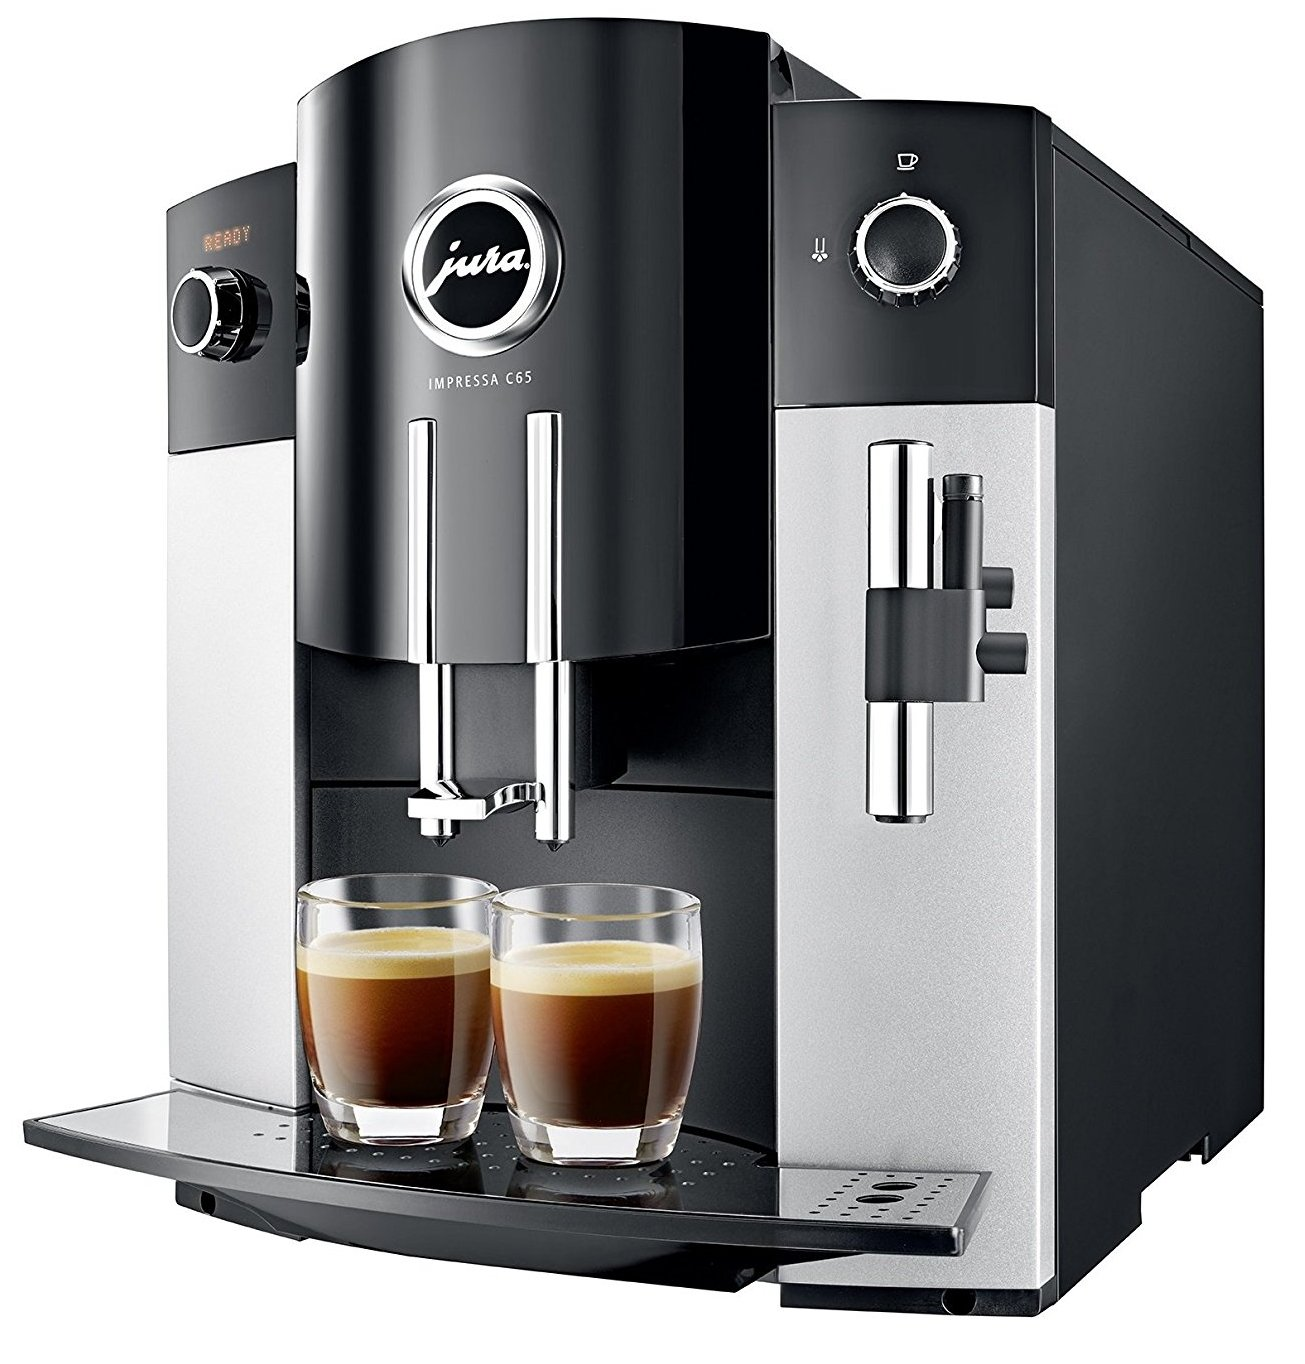 Jura Impressa C65 Superautomatic Espresso Machine!